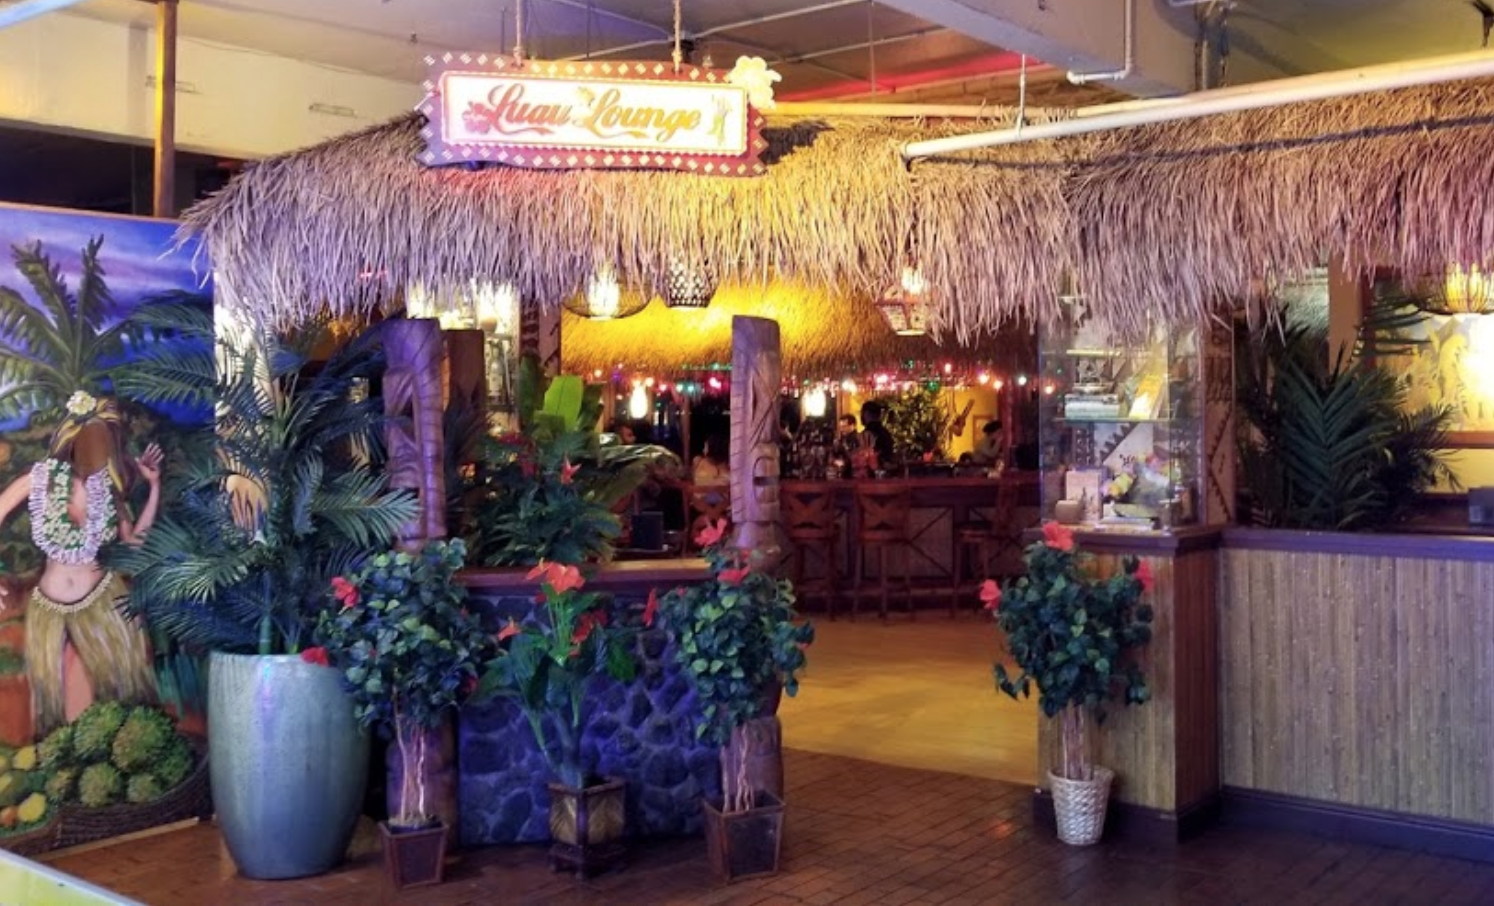 Photo #2 The Luau Lounge at Players Arcade and Sports Grill